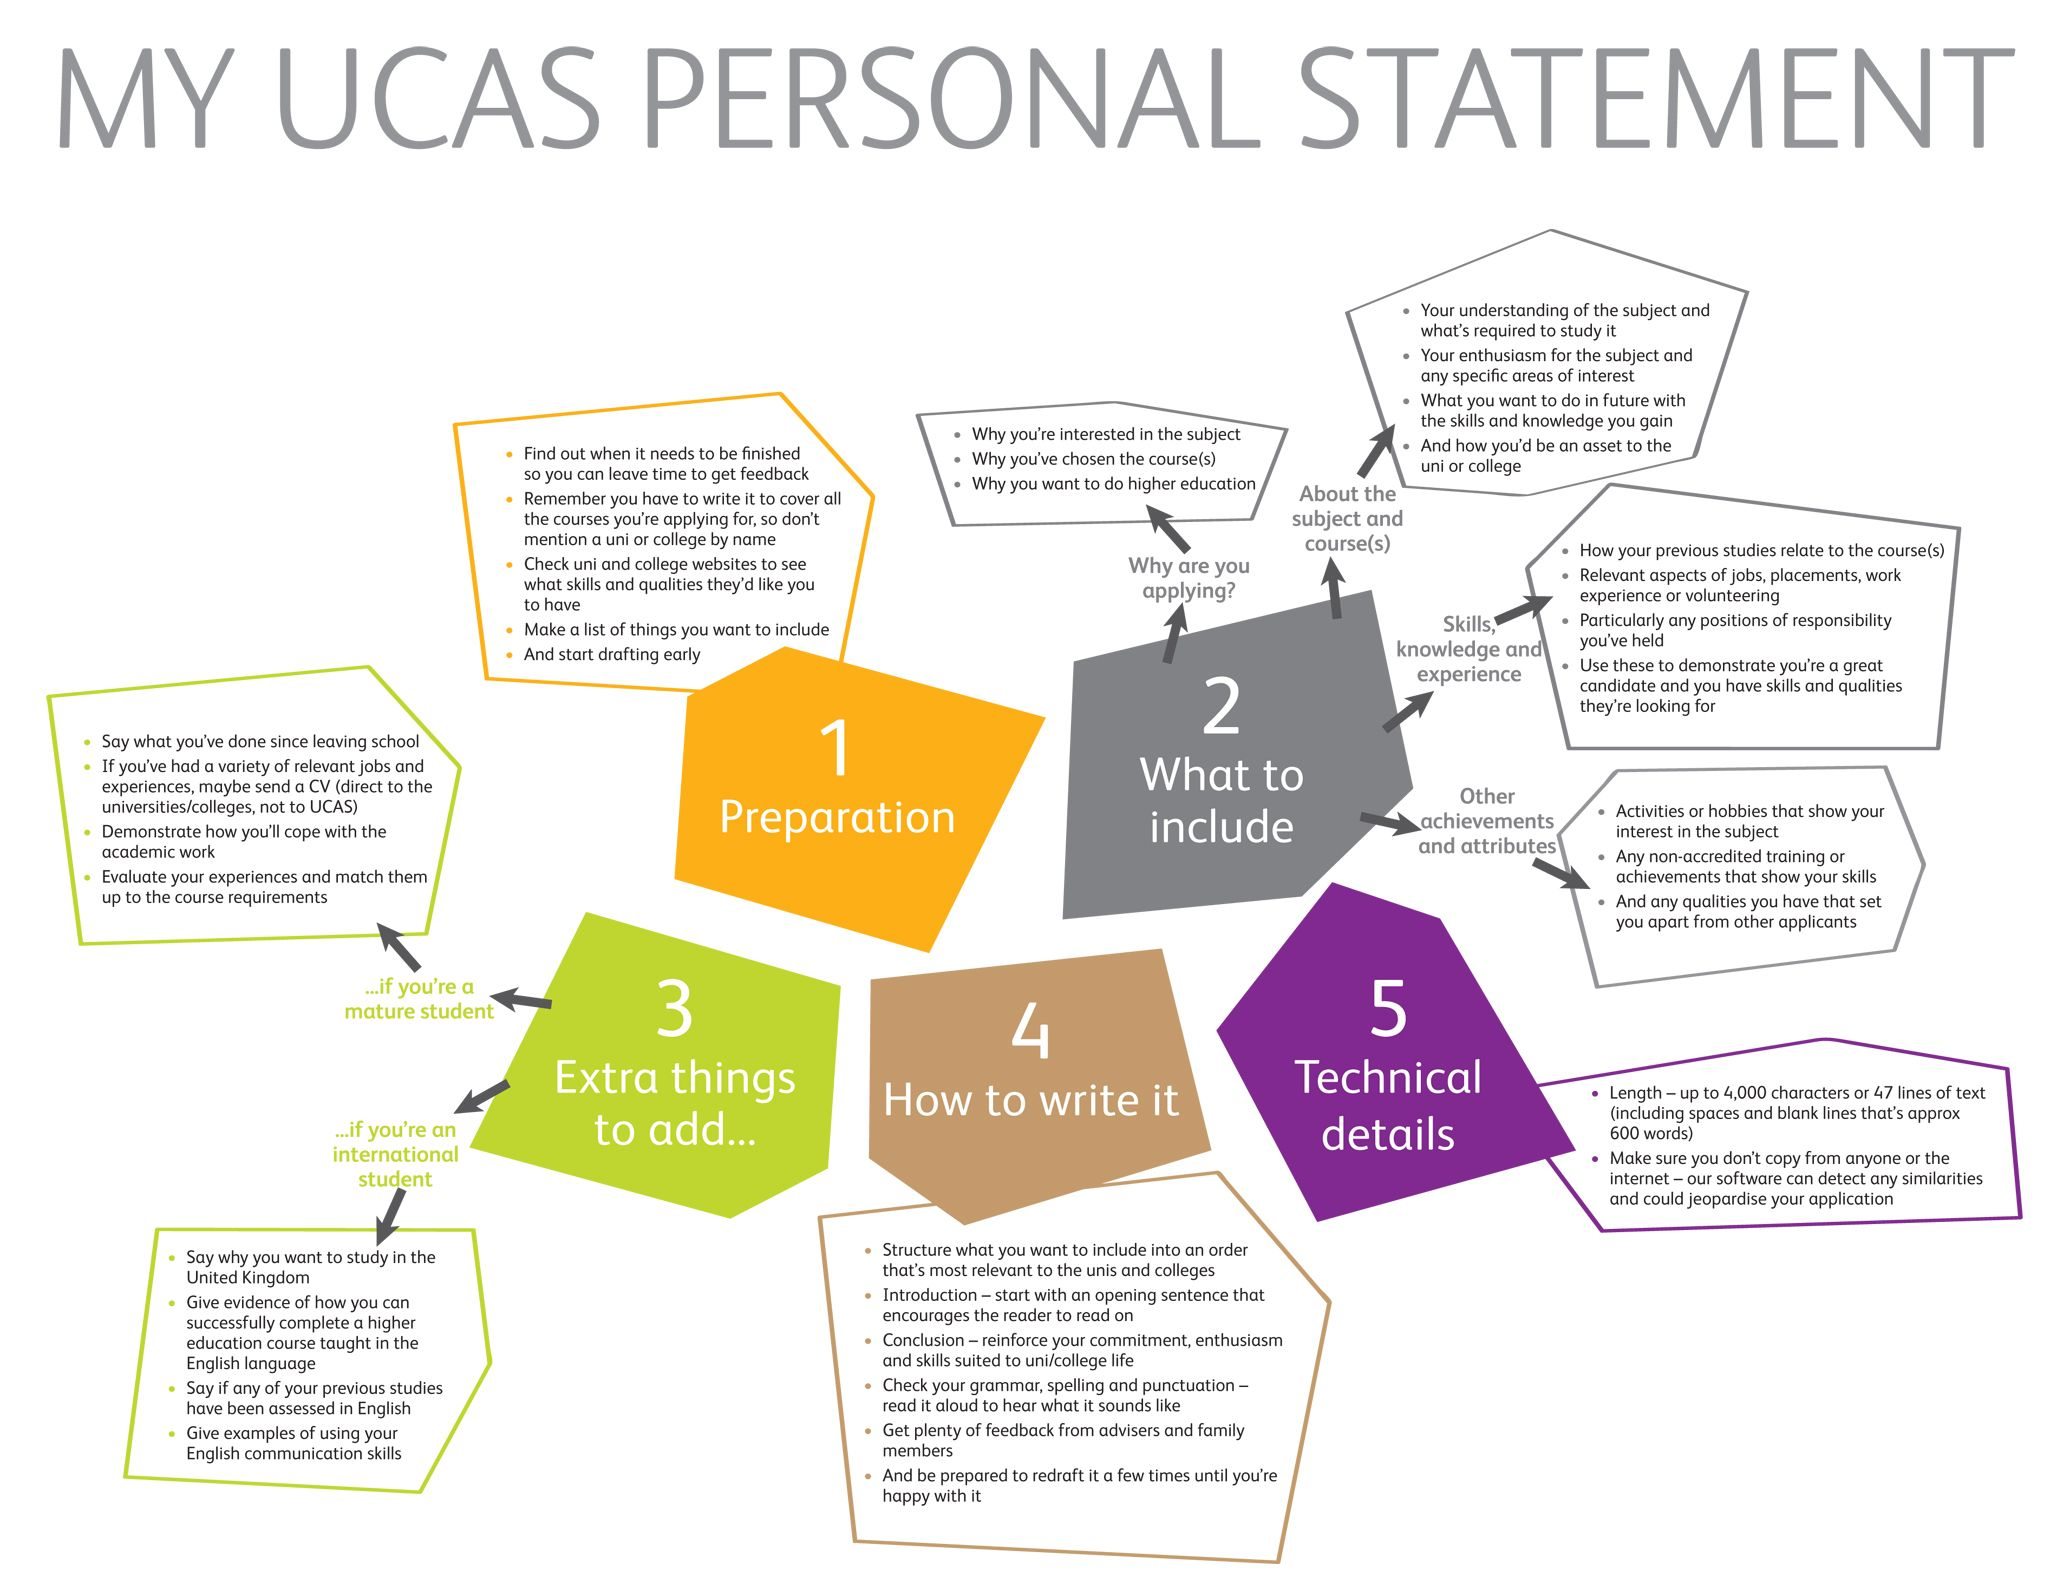 How to write a great Ucas personal statement for university ...